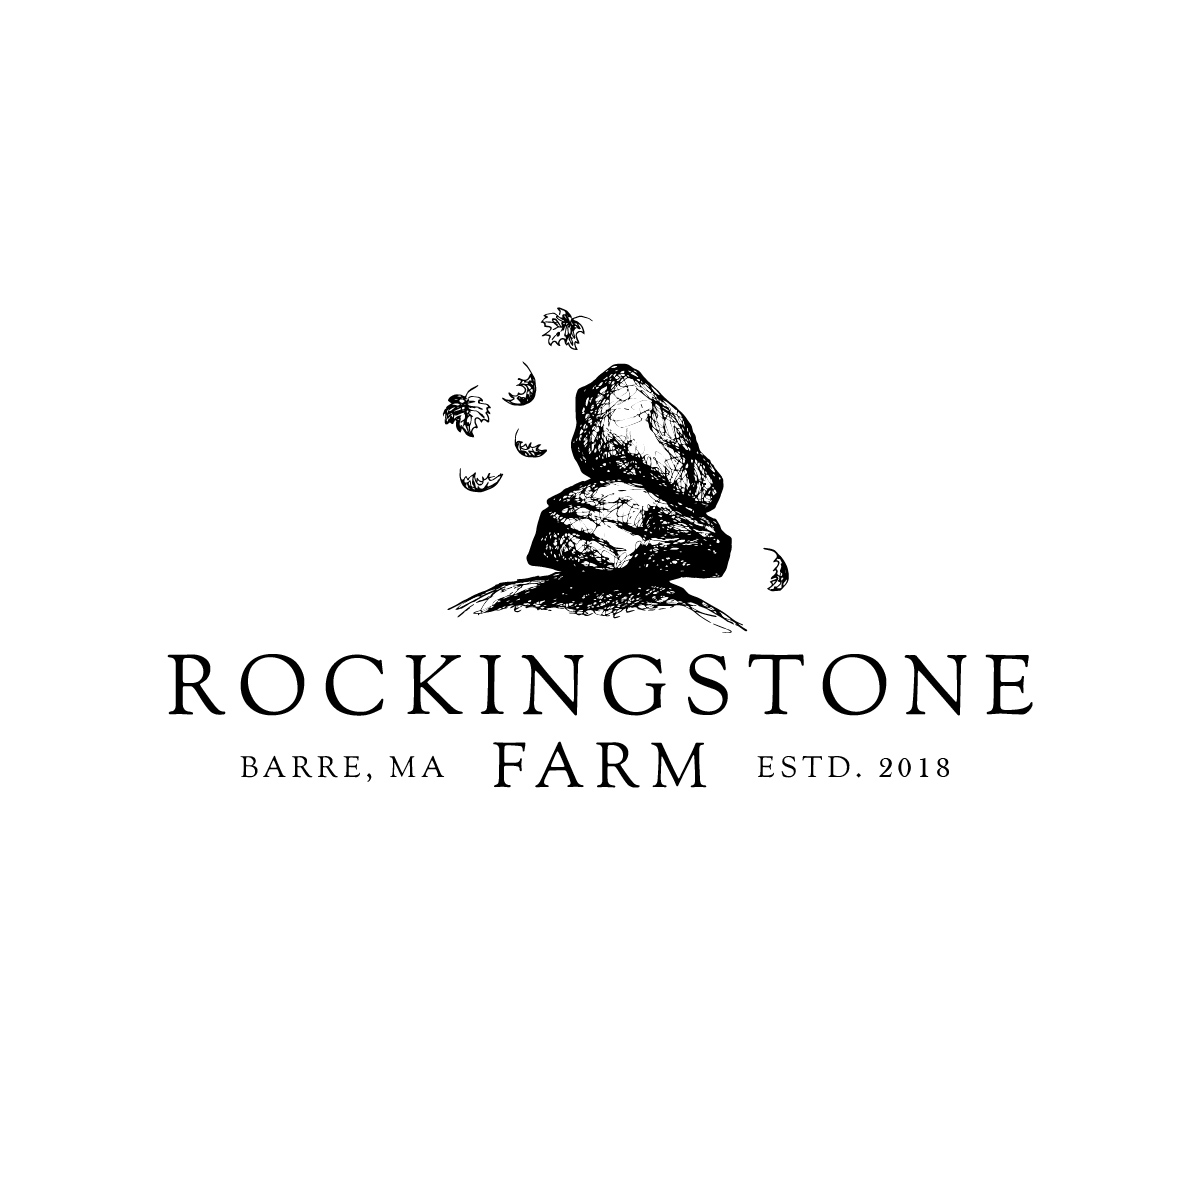 Rockingstone Farm